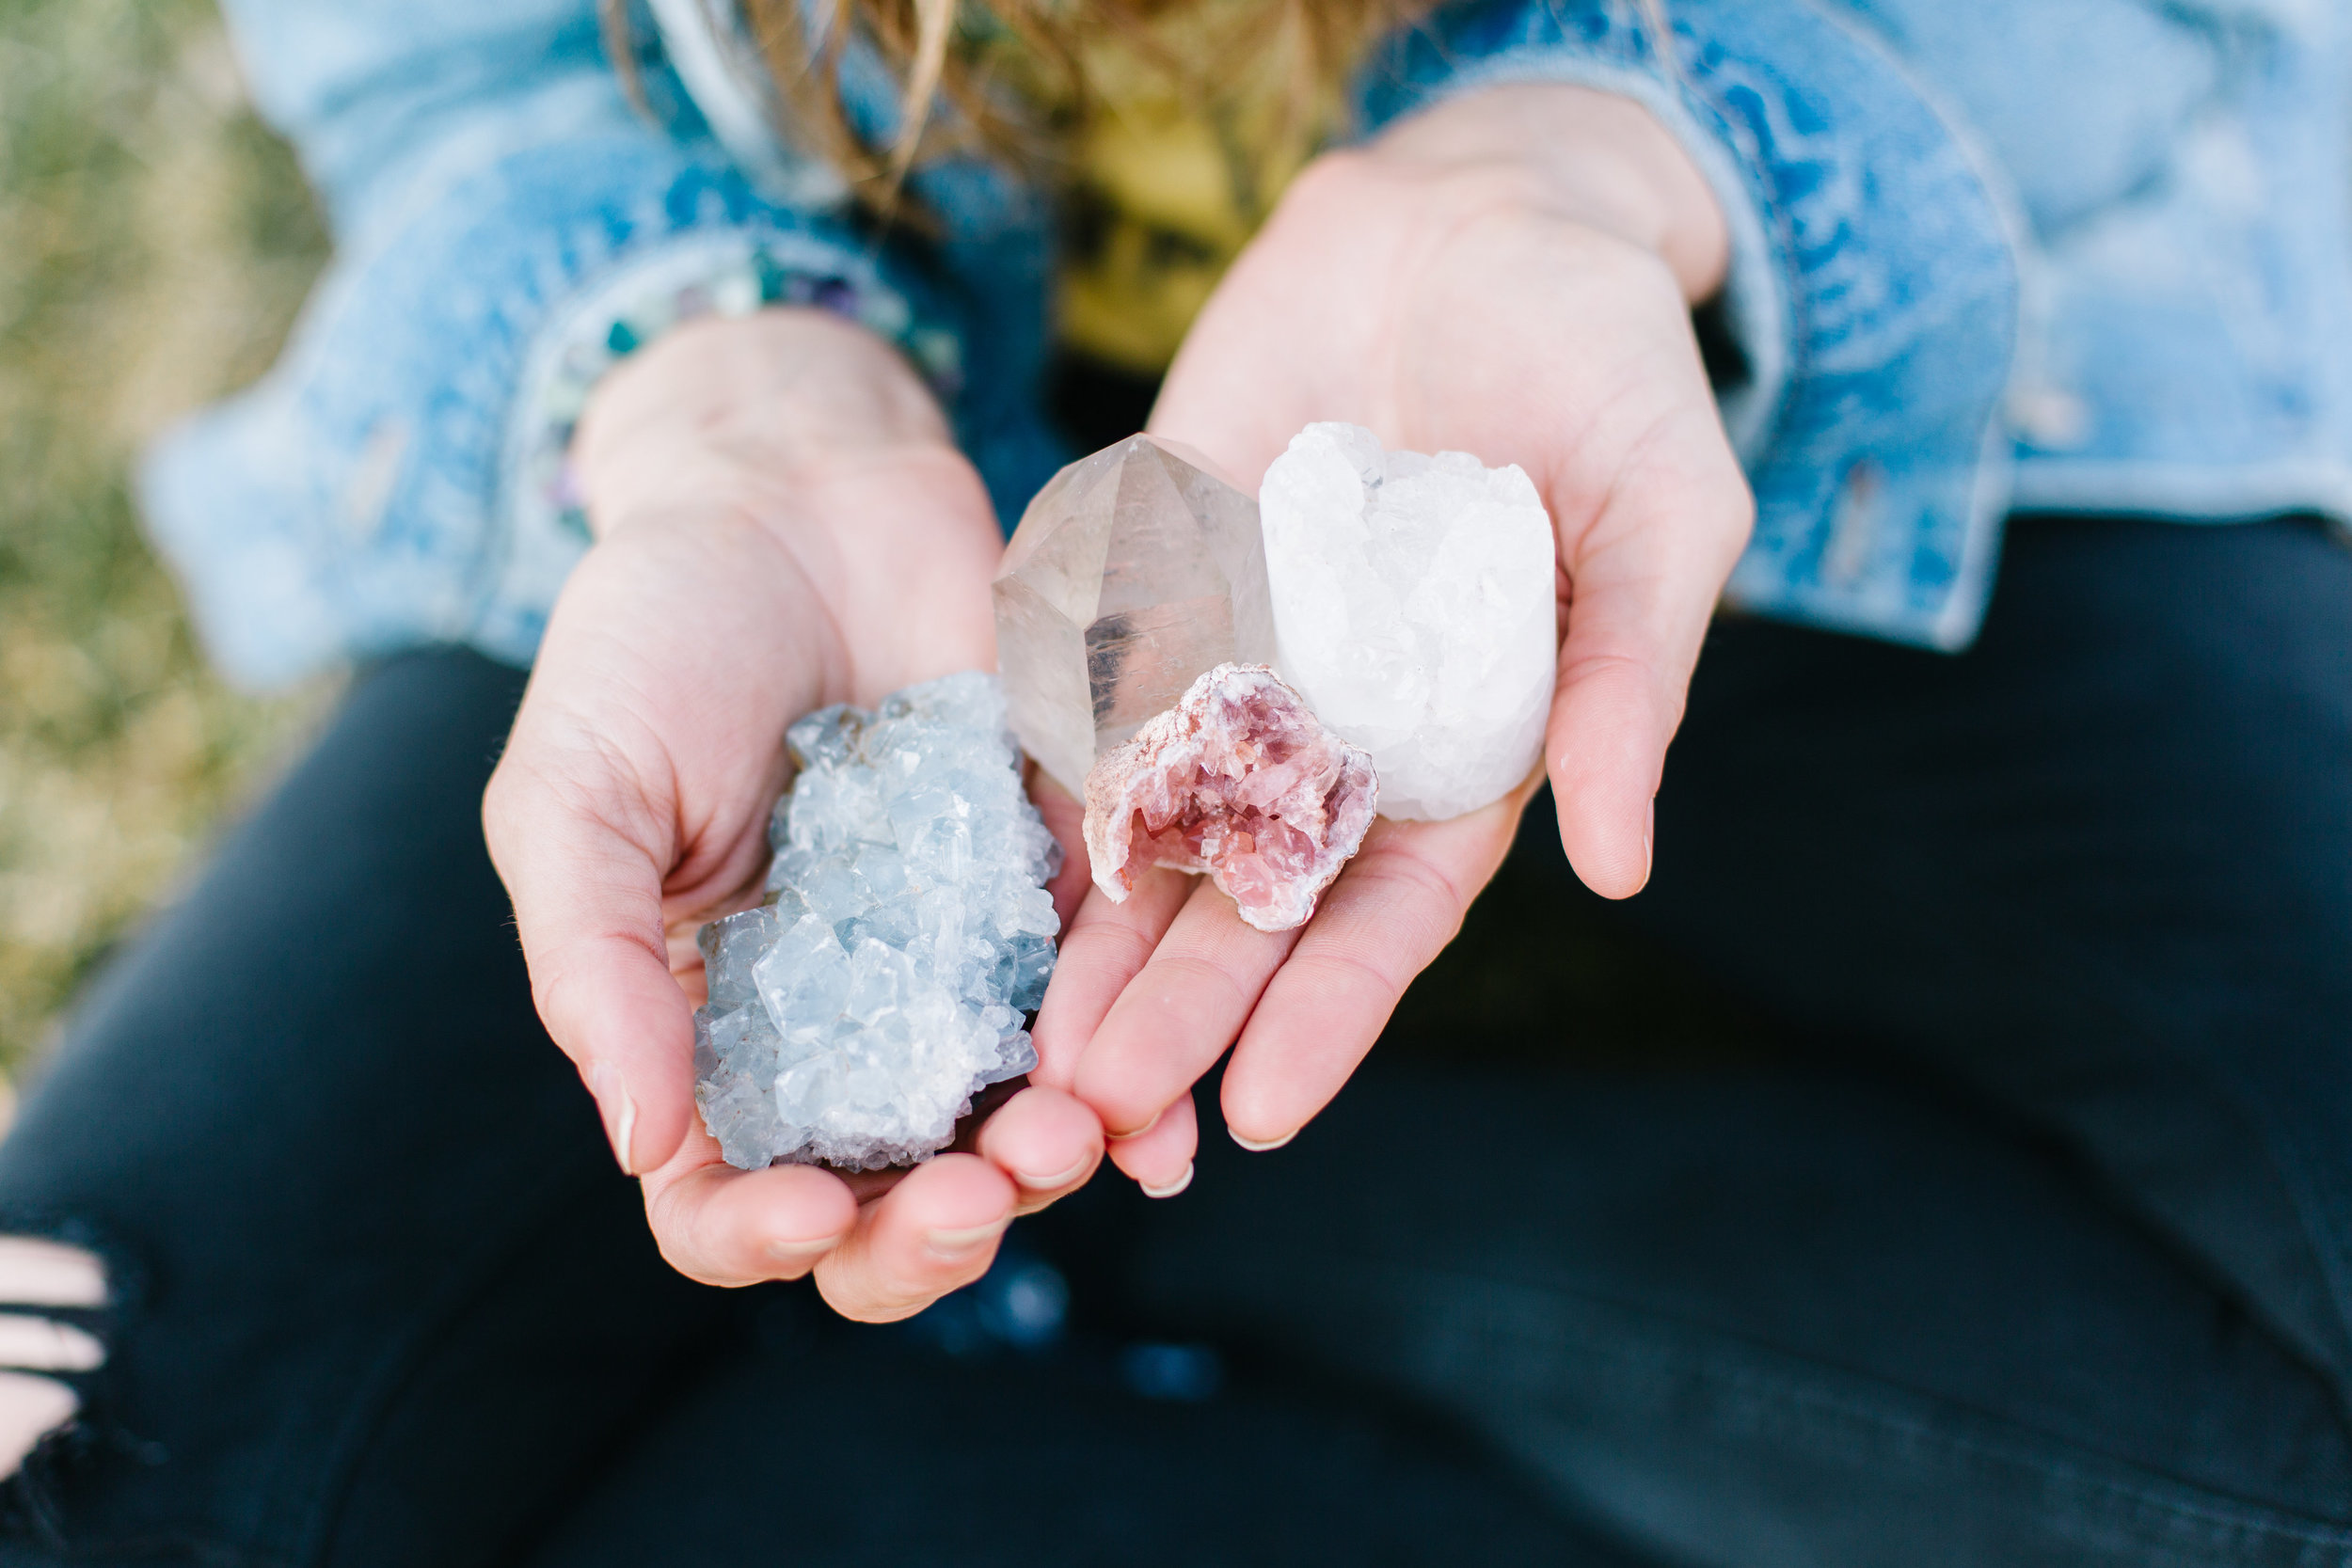 2. Crystal energy support - We believe in the power of vibrational energy. Each month we will share with you a special crystal that will support with the intention of the month.